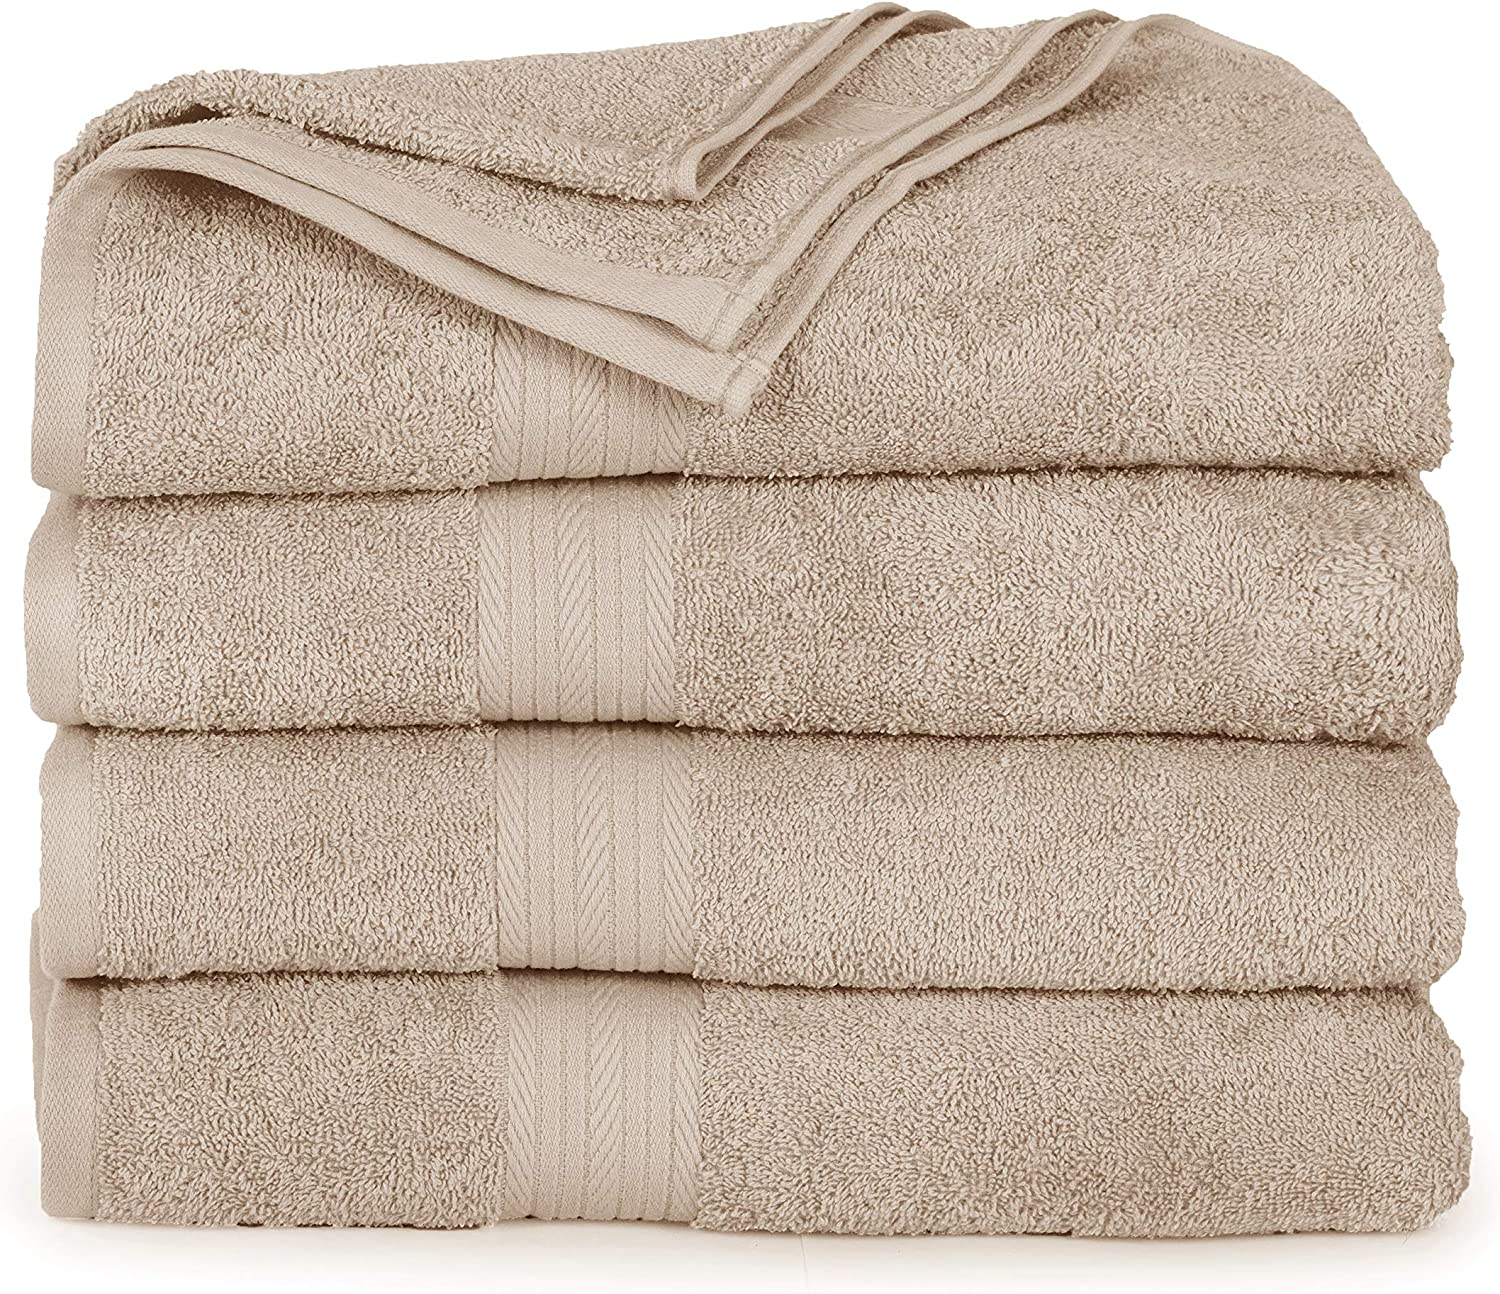 Ample Decor Luxury Bathroom Towels, Made Long-Staple Cotton, Piece of 4 (30 X 54 Inch) Eco Friendly Hotel & Spa Quality Bath Towels Ideal for Daily Use – Beige